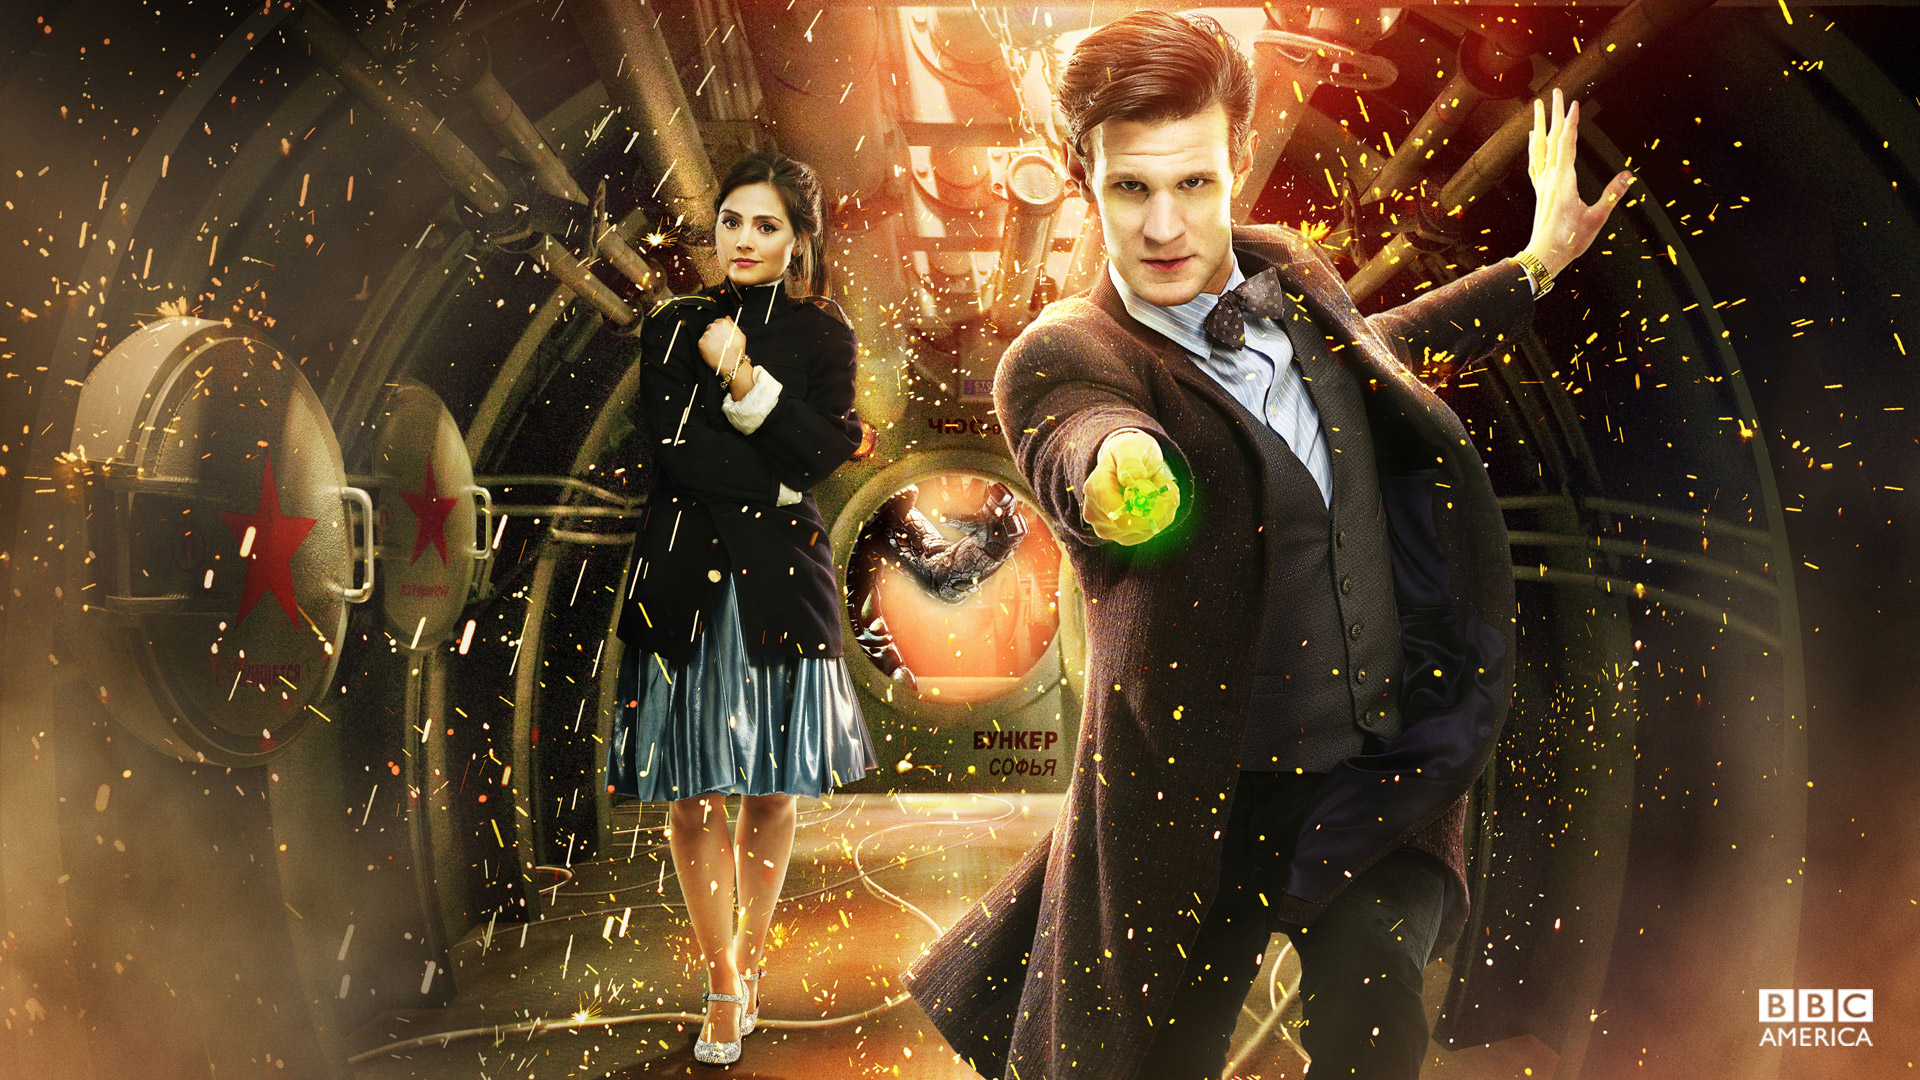 Doctor Who Quotes Iphone Wallpaper Hd Doctor Who Backgrounds Pixelstalk Net